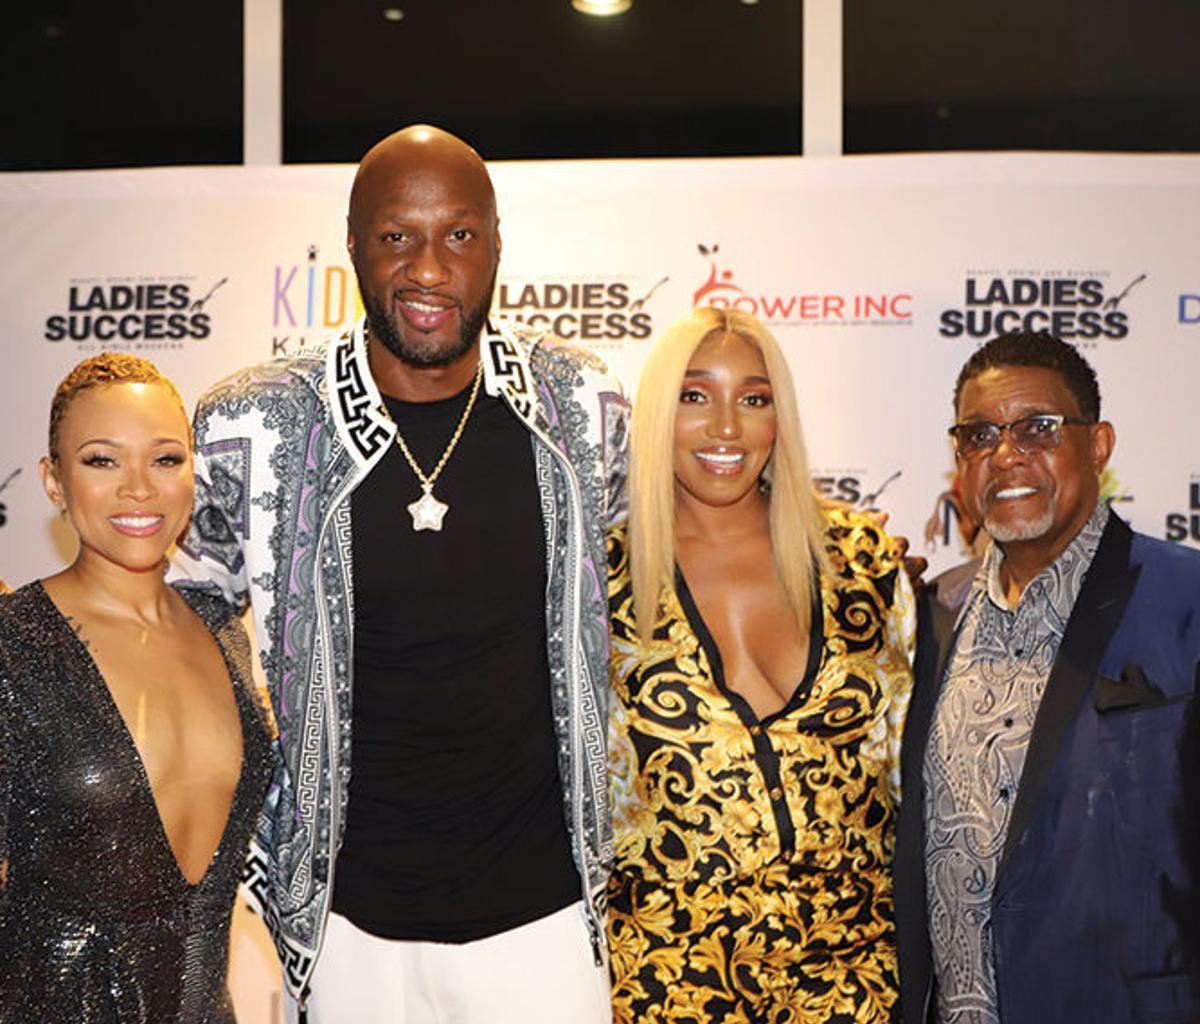 NeNe Leakes Was Impressed By The Support She Received For Her Business